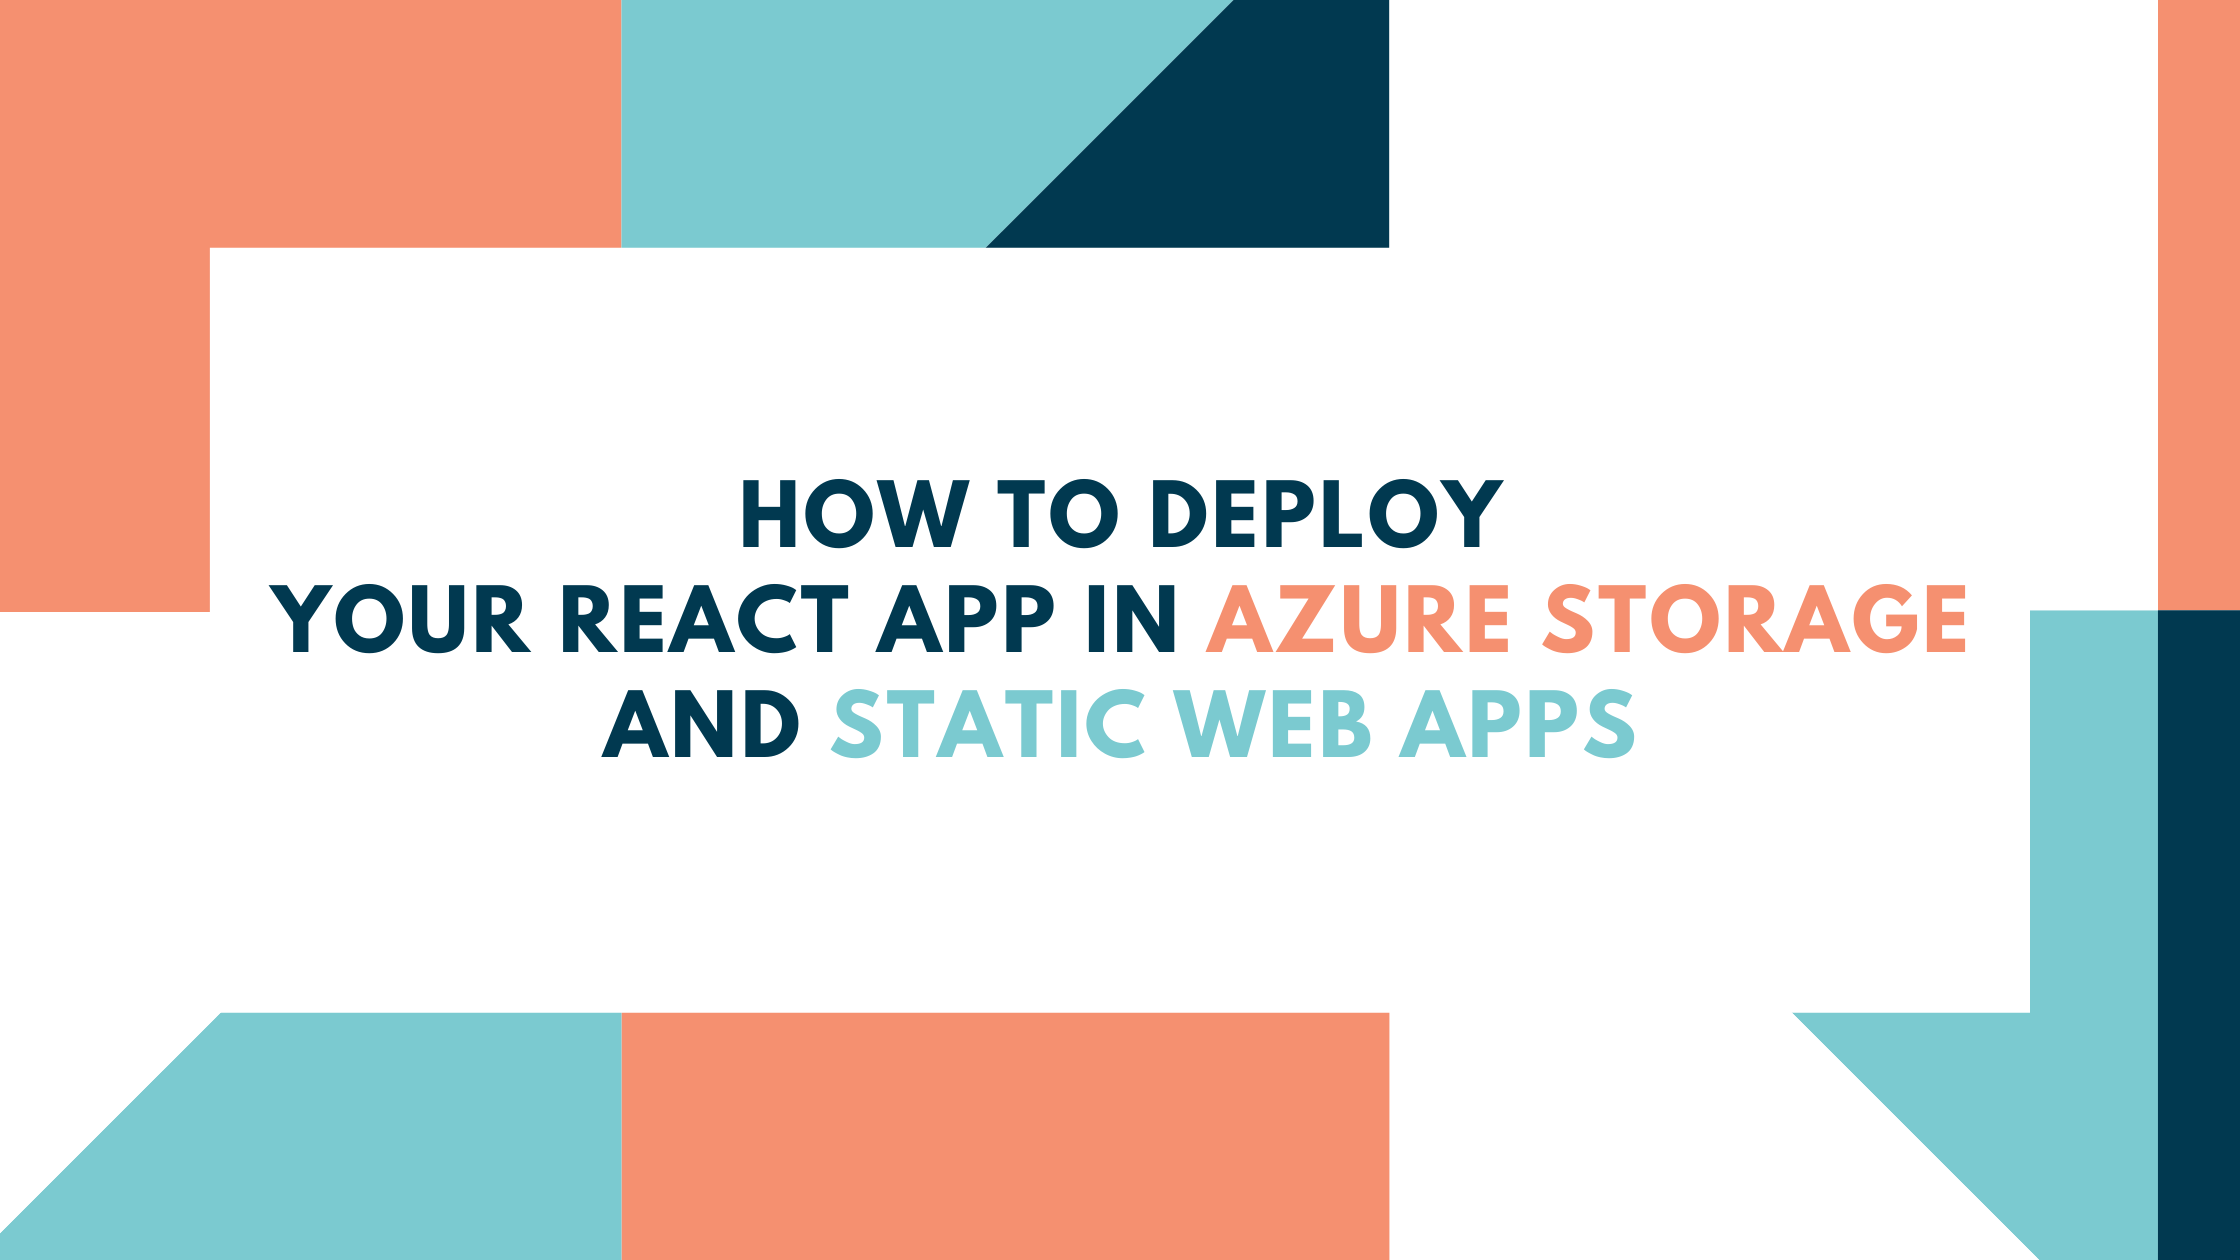 How to Deploy Your React App in Azure Storage and Static Web Apps